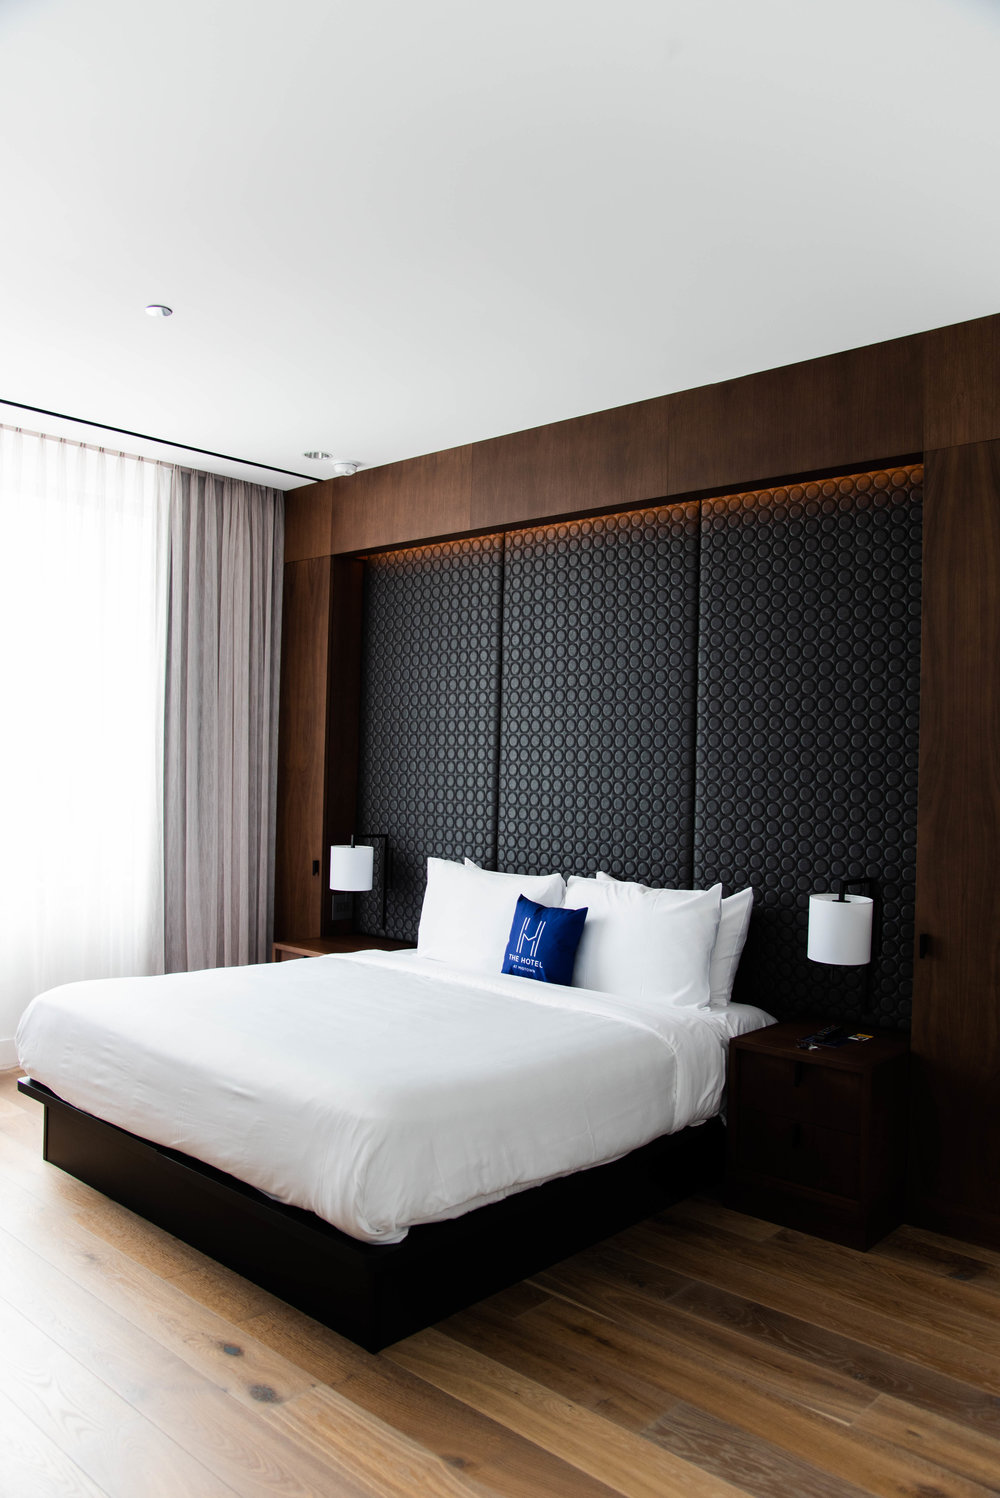 Where to Stay in Chicago | The Hotel at Midtown